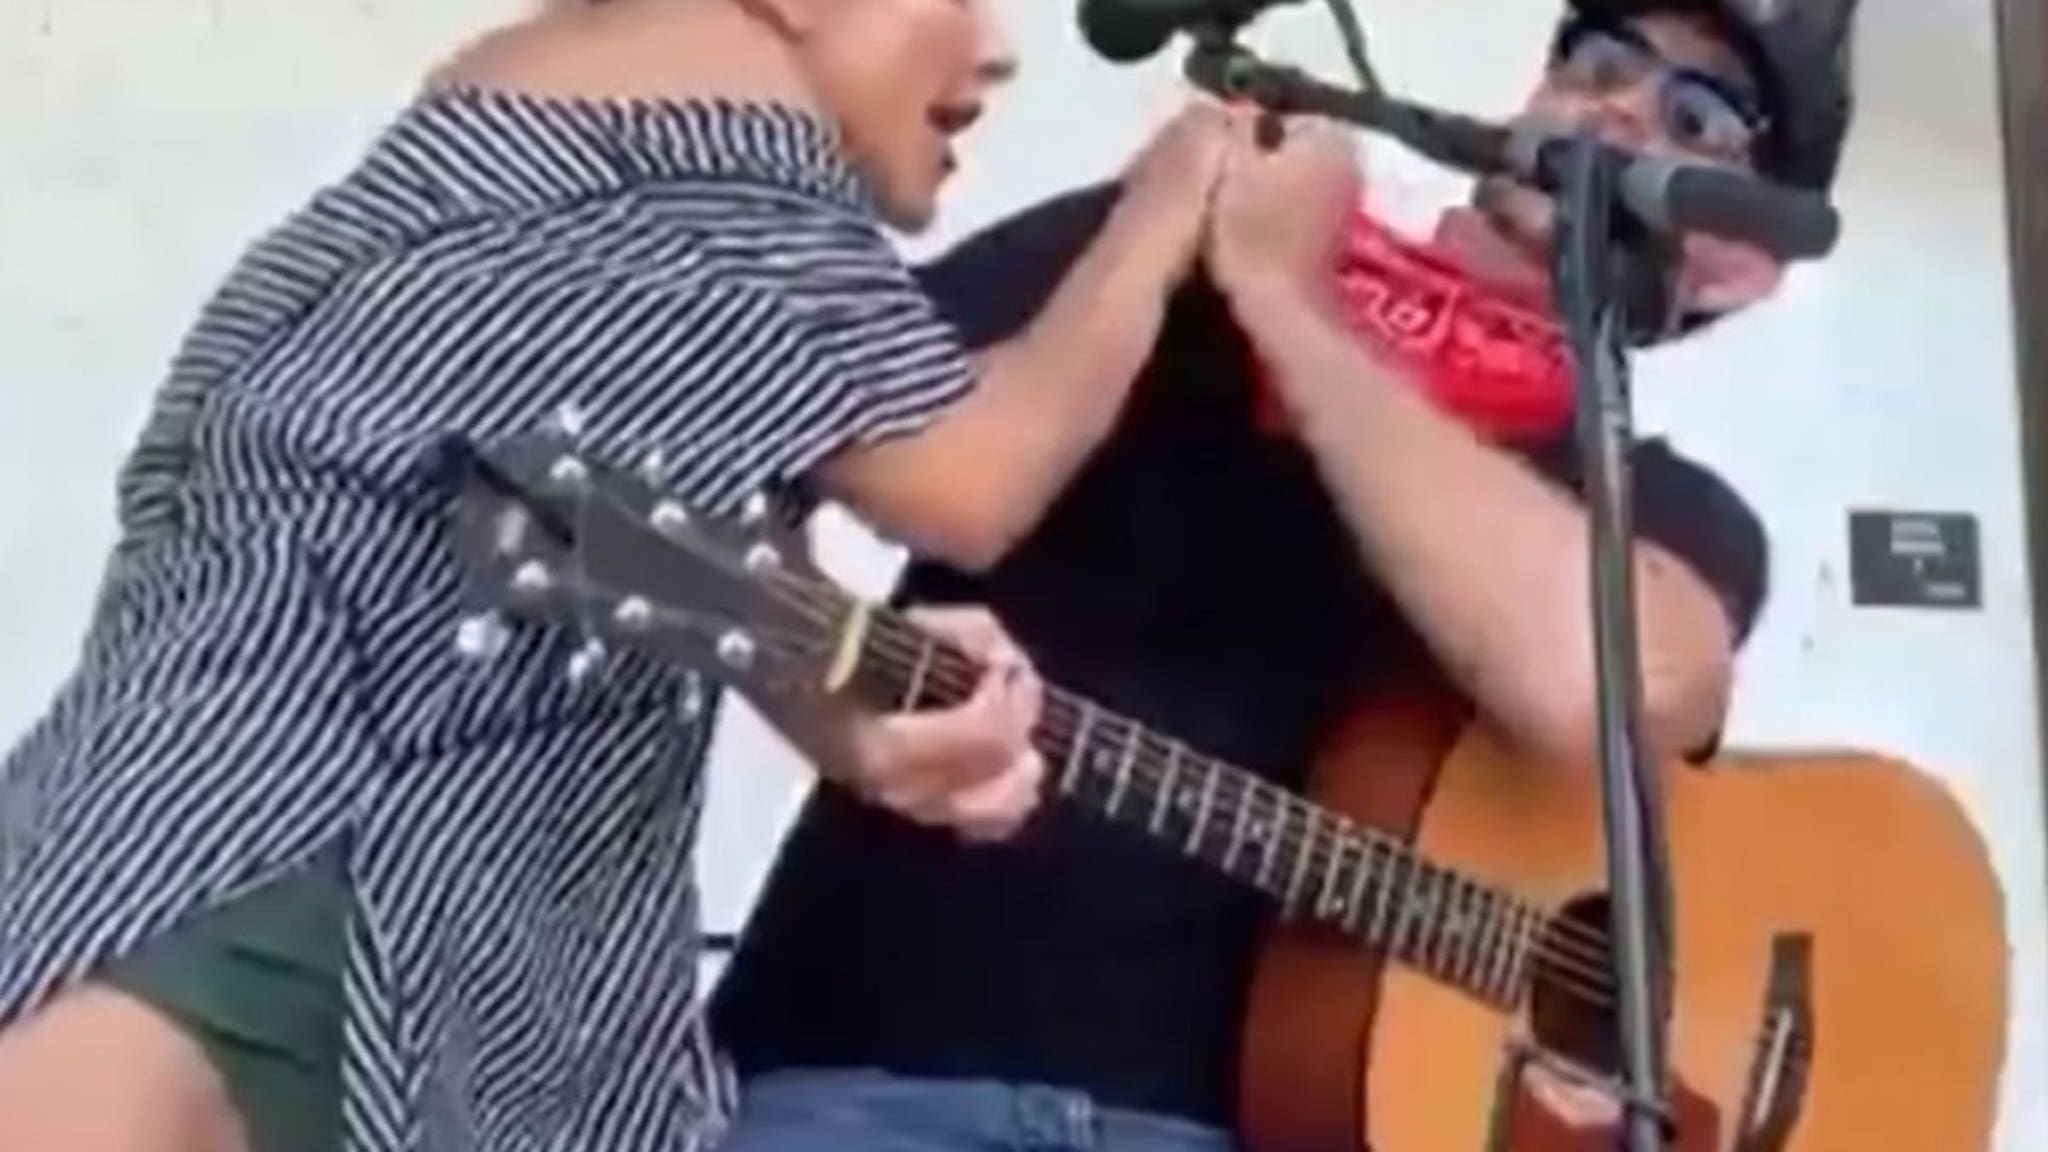 Singer Says Woman Coughed On Him Onstage, Accepts Apology